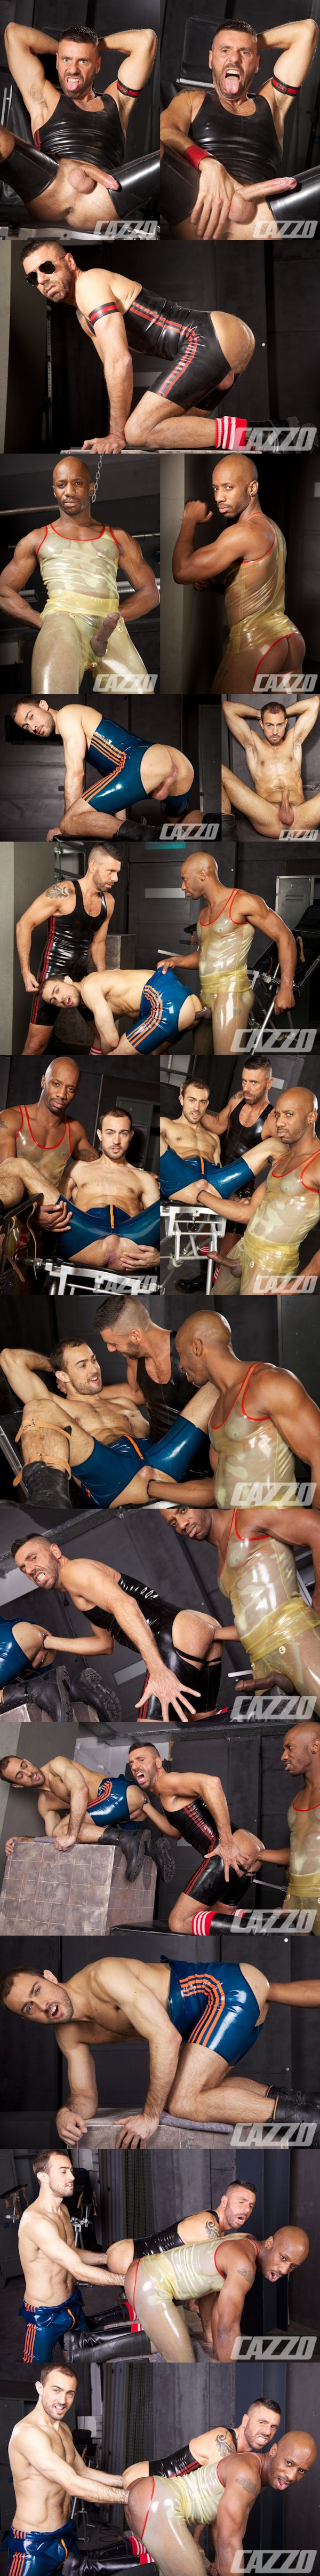 Masculine guys Ale Tedesco, Race Cooper and Sylvaint Lyk have hot sandwich fisting fucking train at Cazzoclub 01